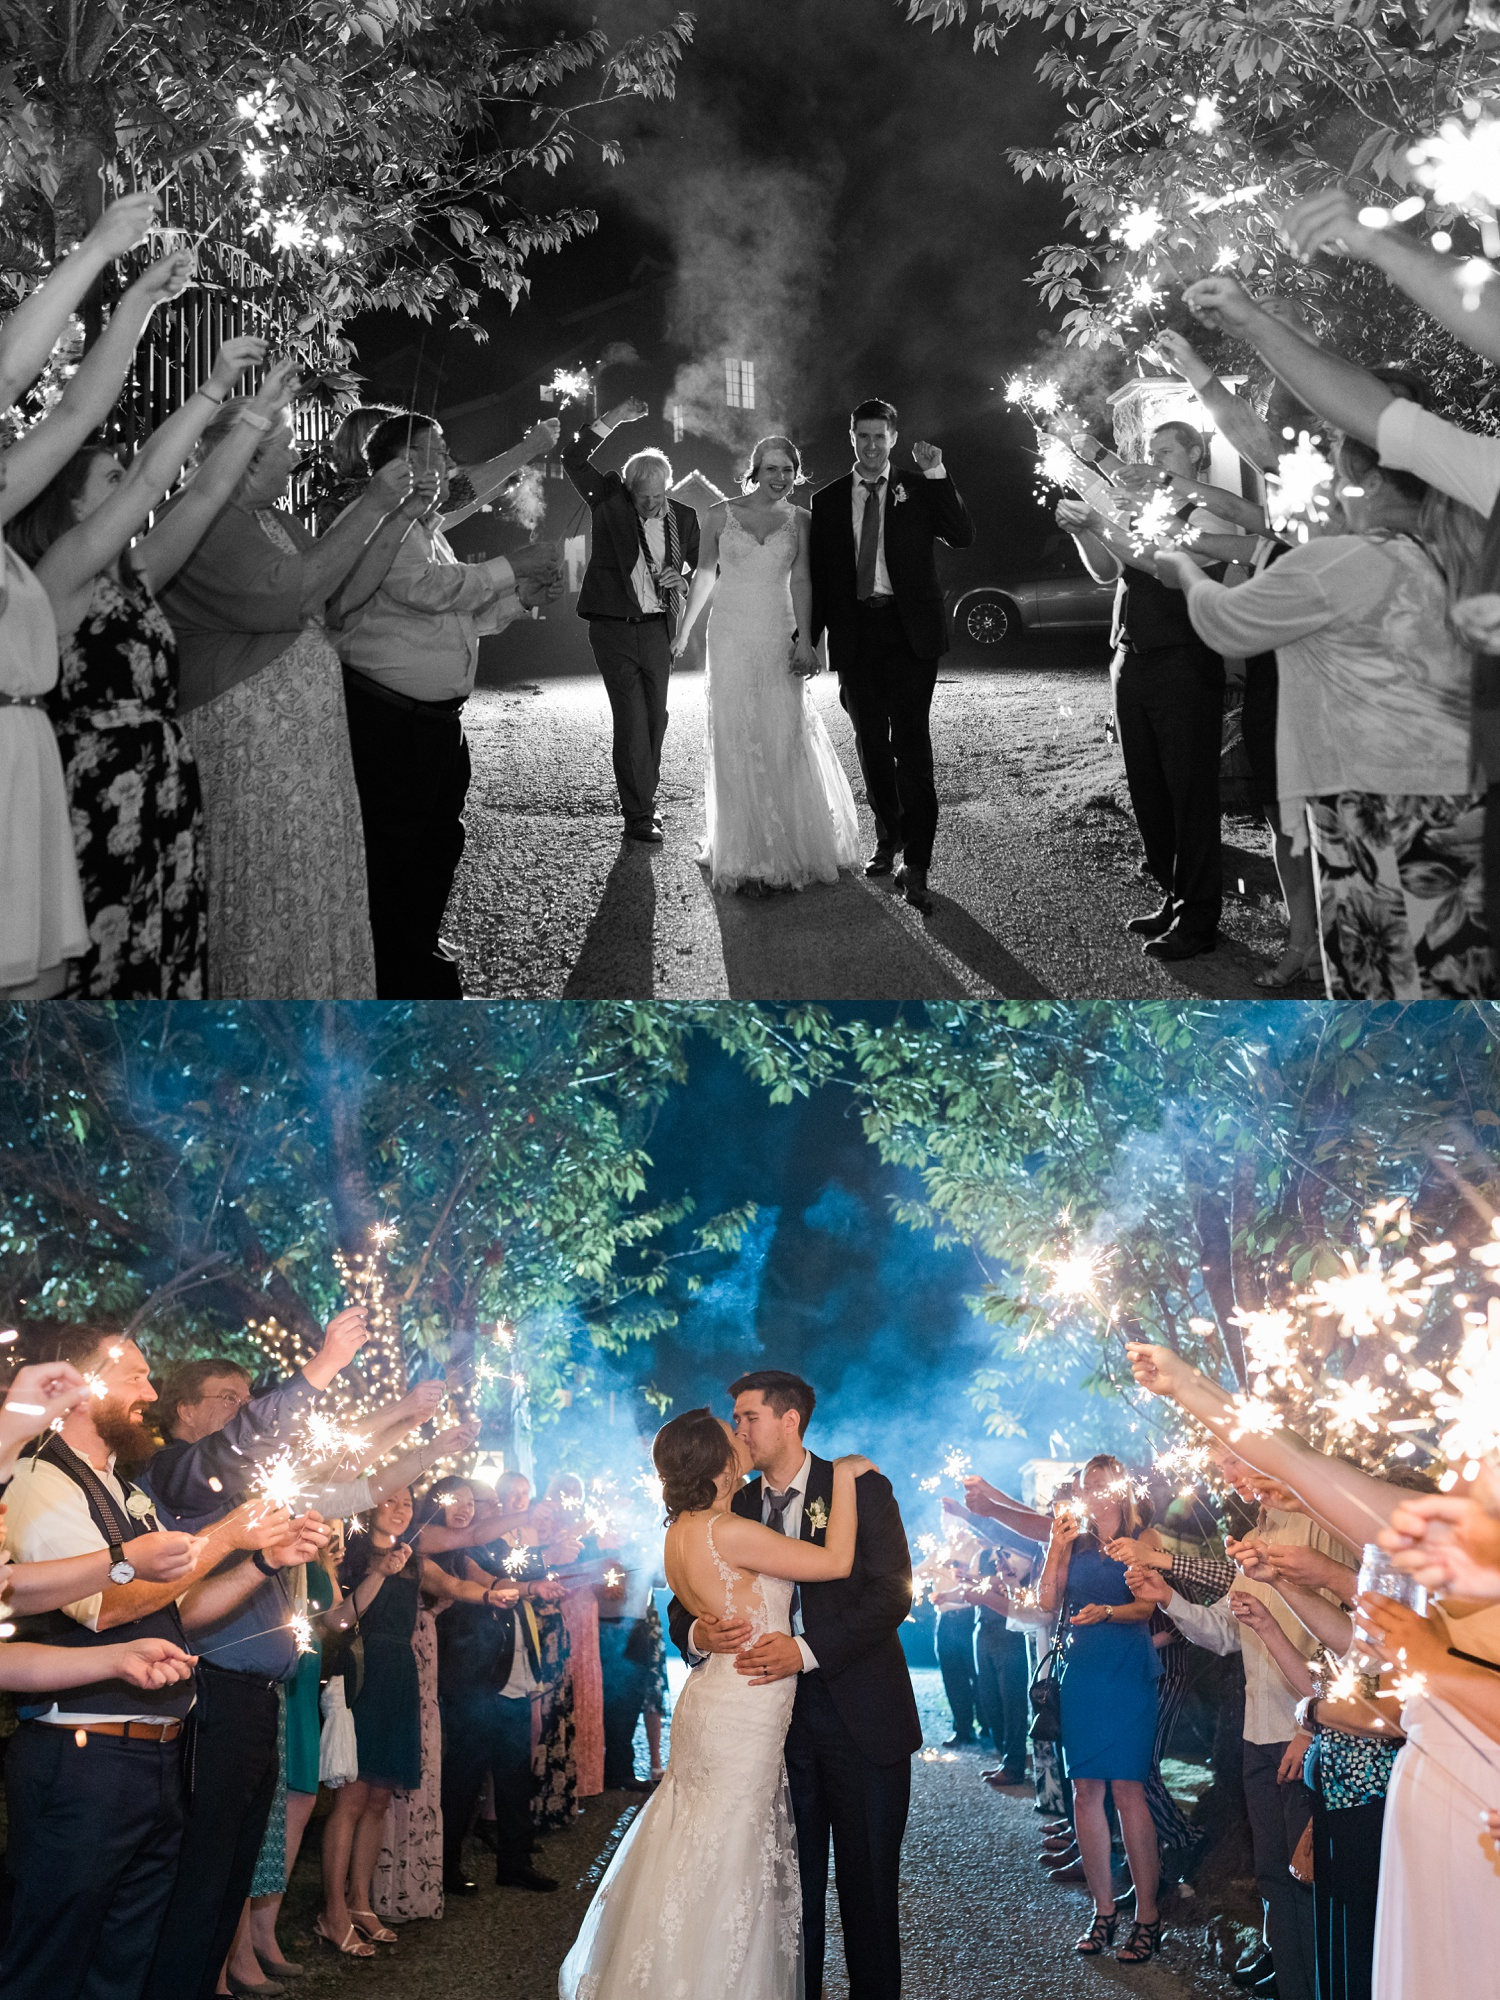 A bride and groom kiss during a sparkler send-off during a wedding at Chateau Lill in Woodinville, a wedding venue near Seattle, WA. | Joanna Monger Photography | Seattle & Snohomish Photographer